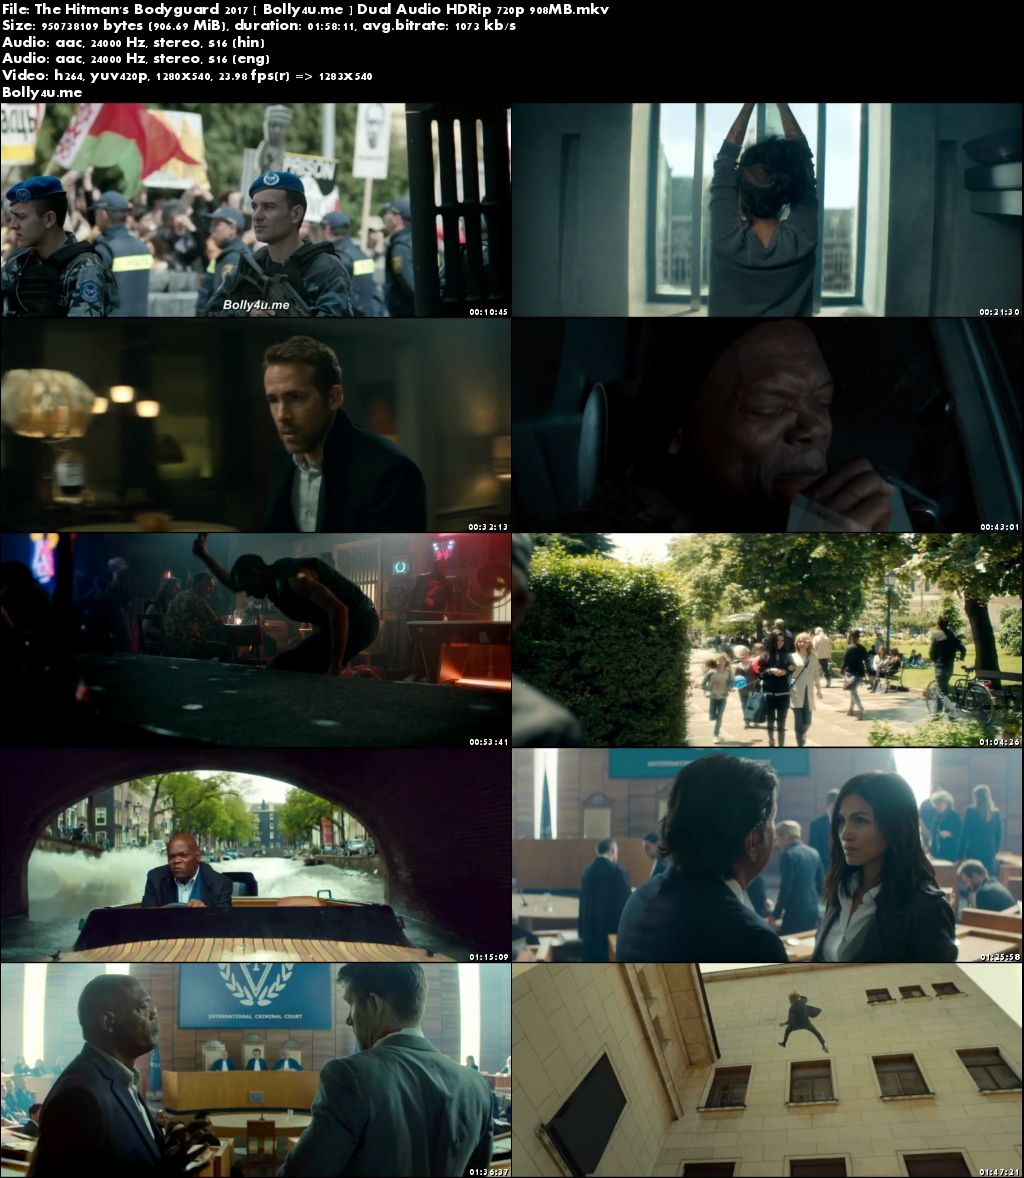 The Hitman's Bodyguard 2017 HDRip 900MB Hindi Dual Audio 720p Download